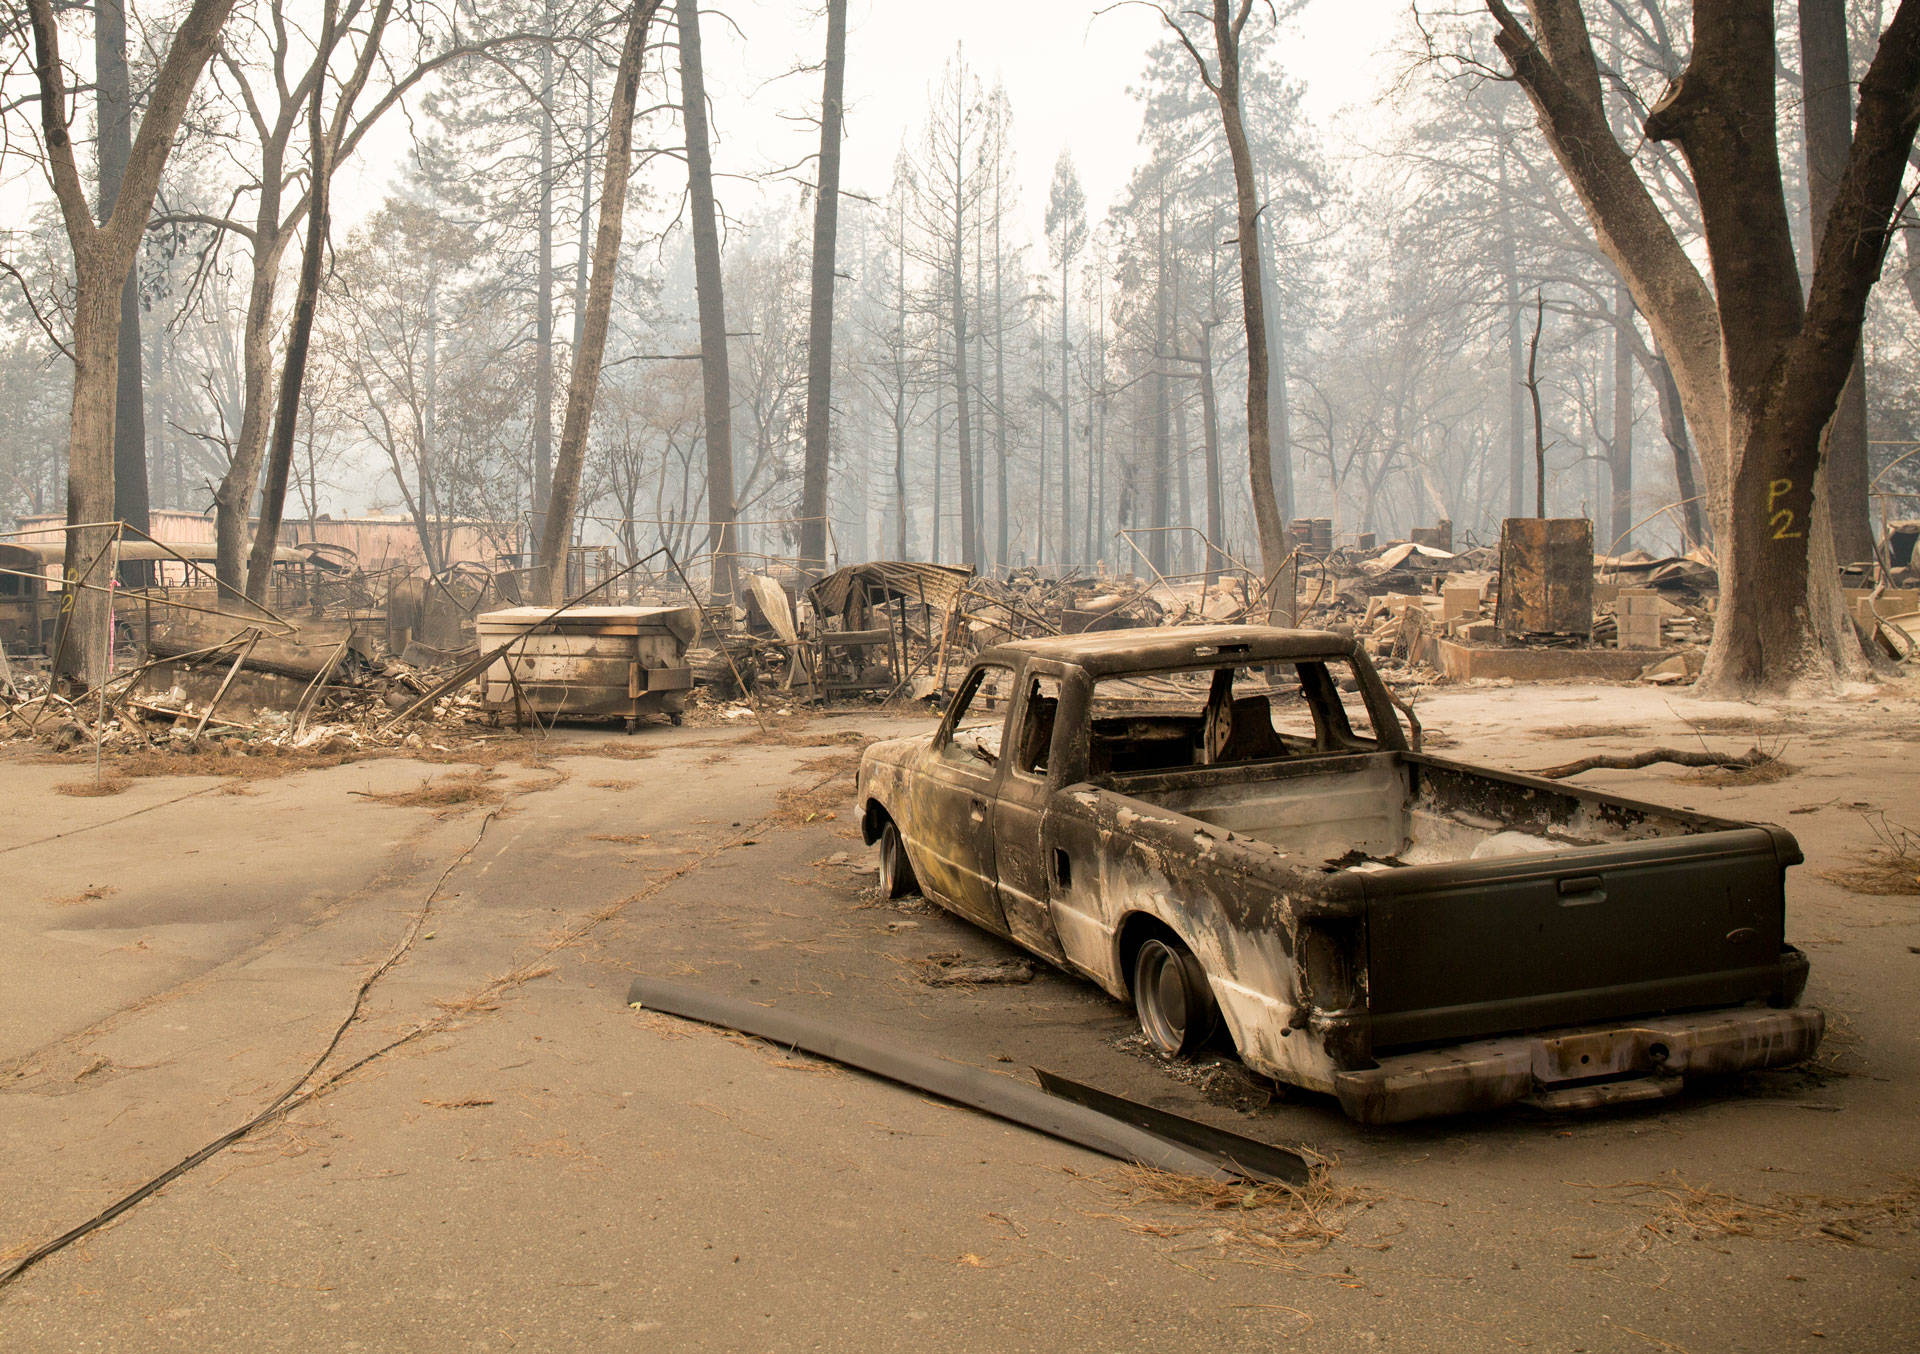 The site of Paradise Army Surplus on Nov. 13, 2018, after the Camp Fire decimated the area. Anne Wernikoff/KQED